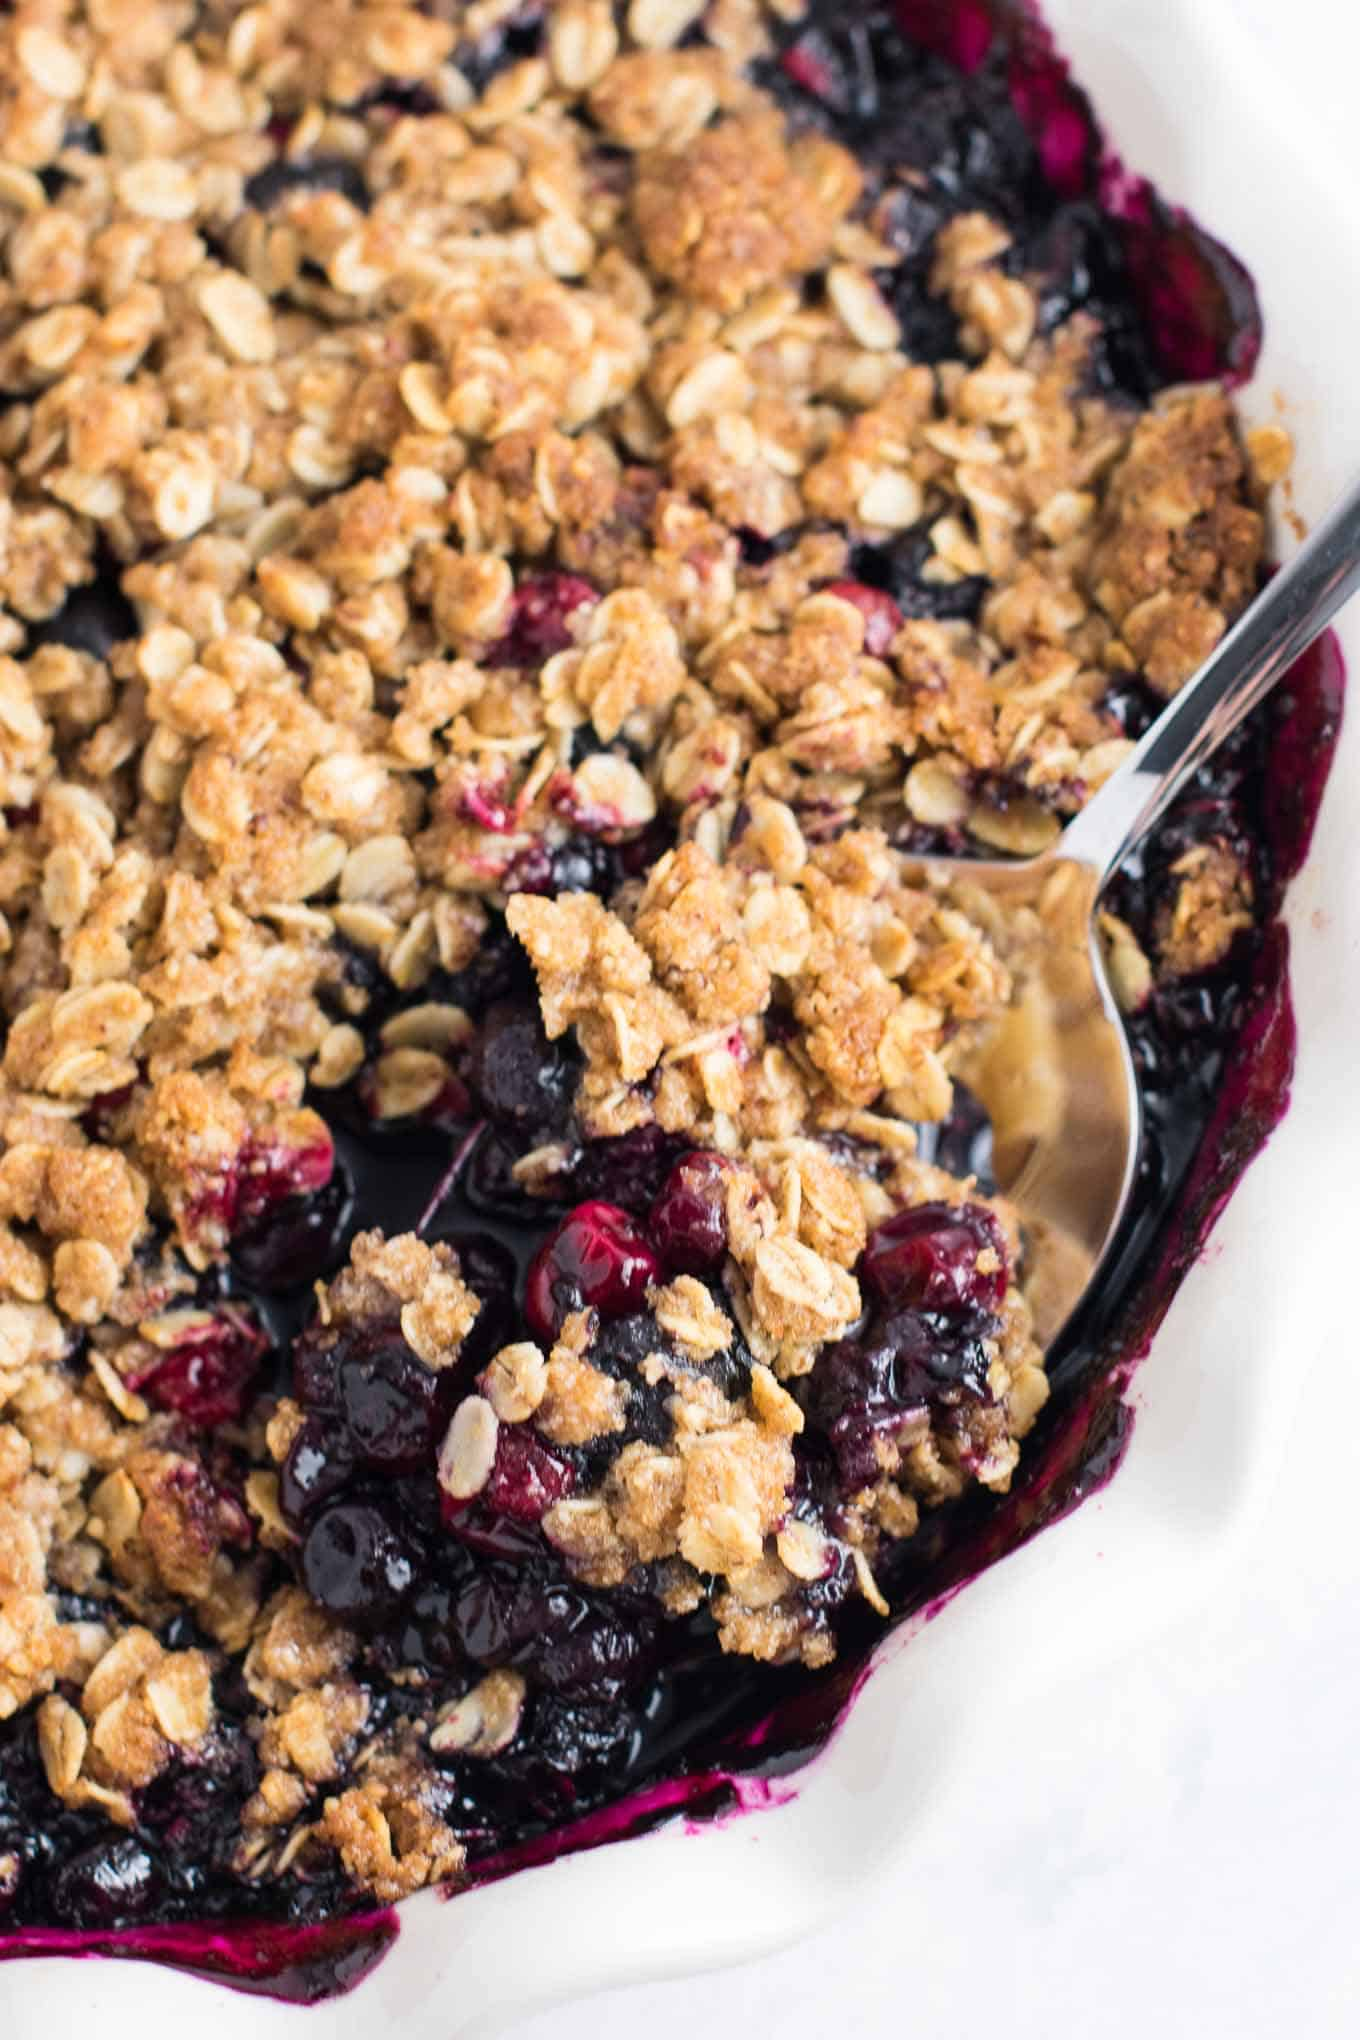 Cranberry Blueberry Crisp recipe